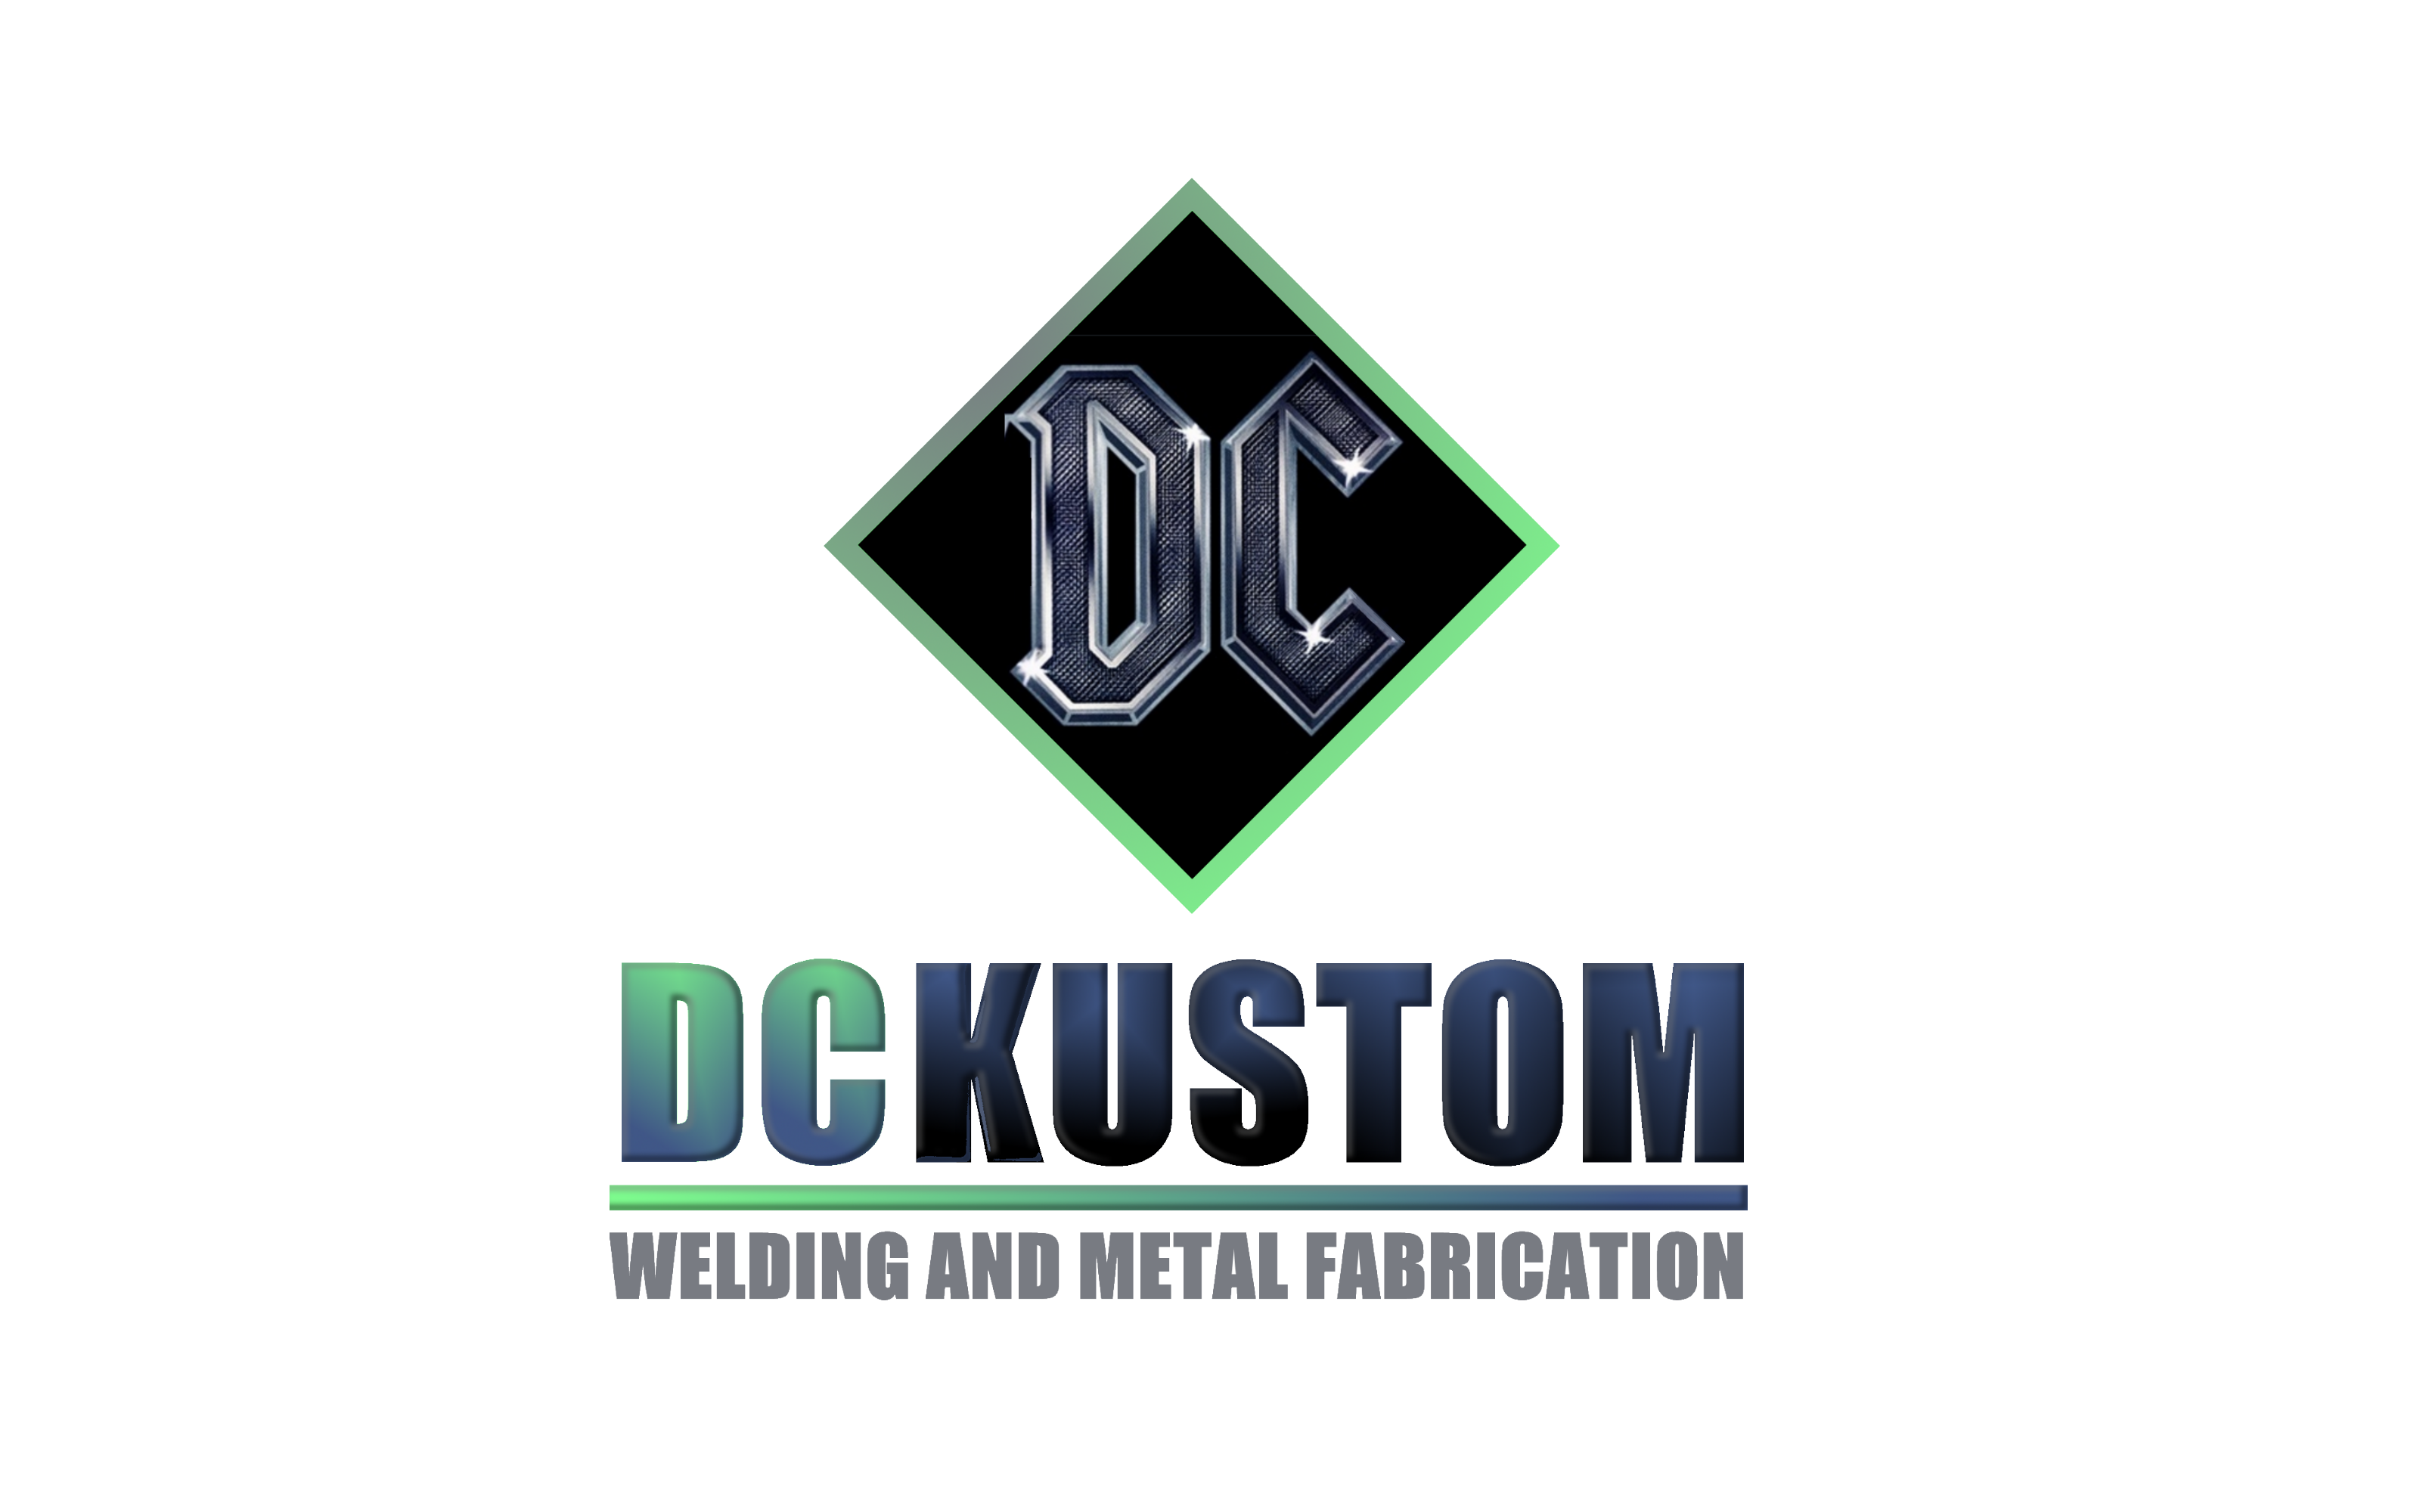 Logo Design by Roberto Bassi - Entry No. 166 in the Logo Design Contest Imaginative Logo Design for DC KUSTOM WELDING & METAL FABRICATION.